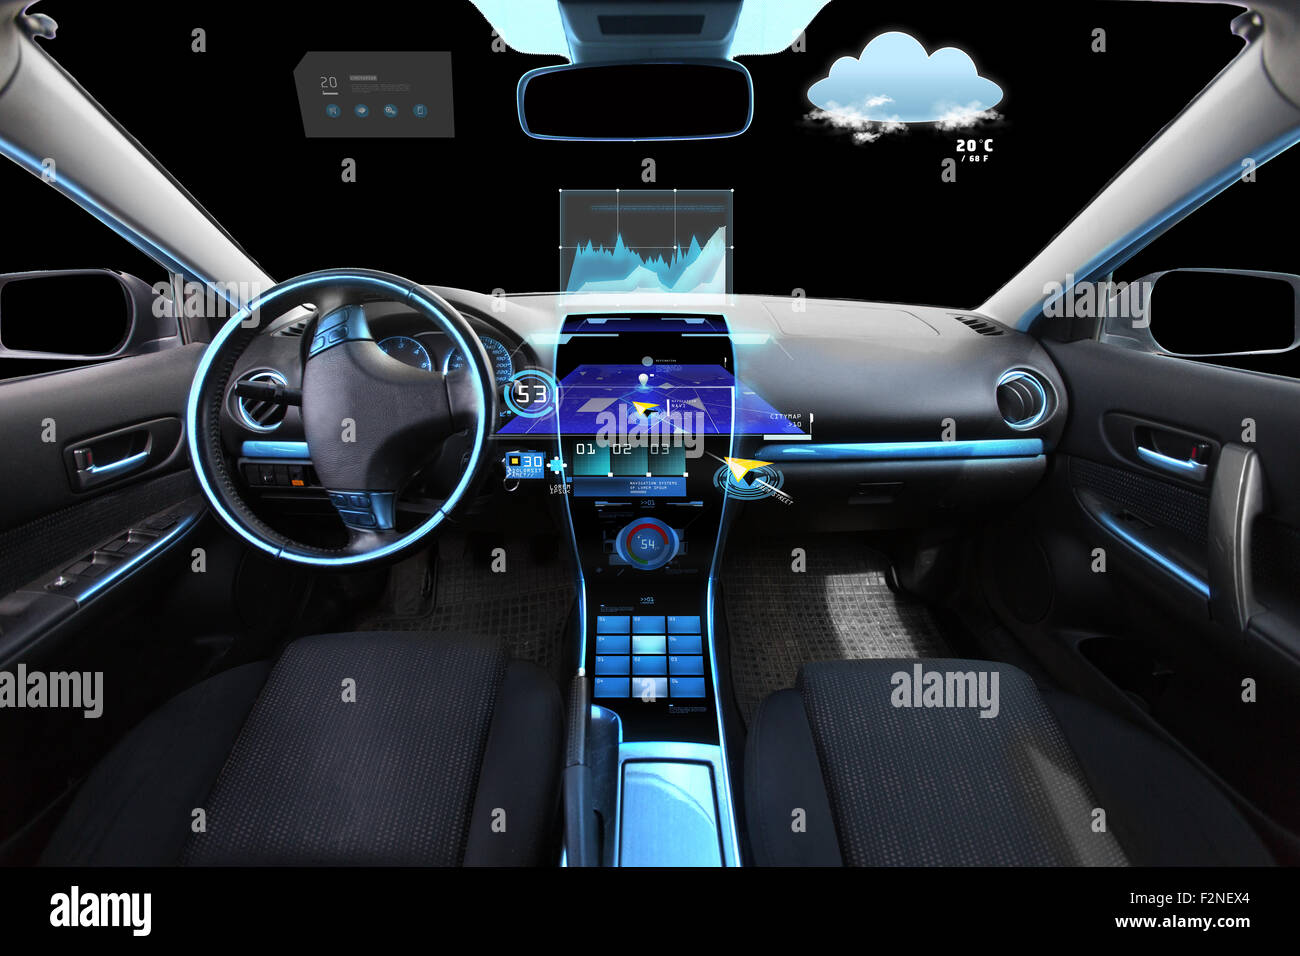 car salon with navigation system and meteo sensors - Stock Image